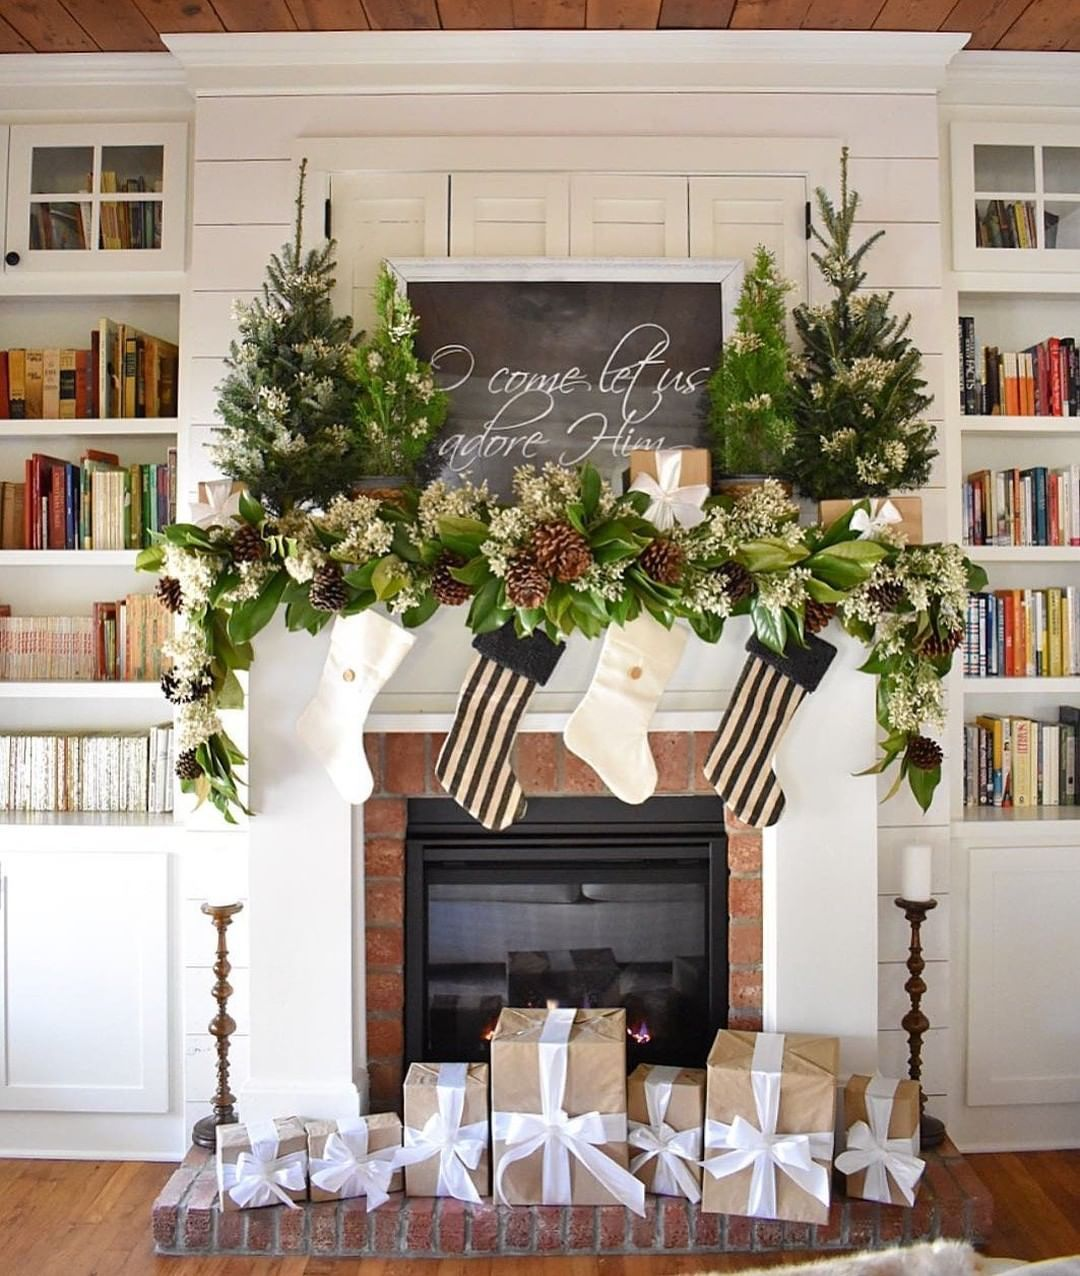 2019 Christmas Farmhouse decor ideas Latest Fashion Trends for Women sumcoco.com #magnoliachristmasdecor